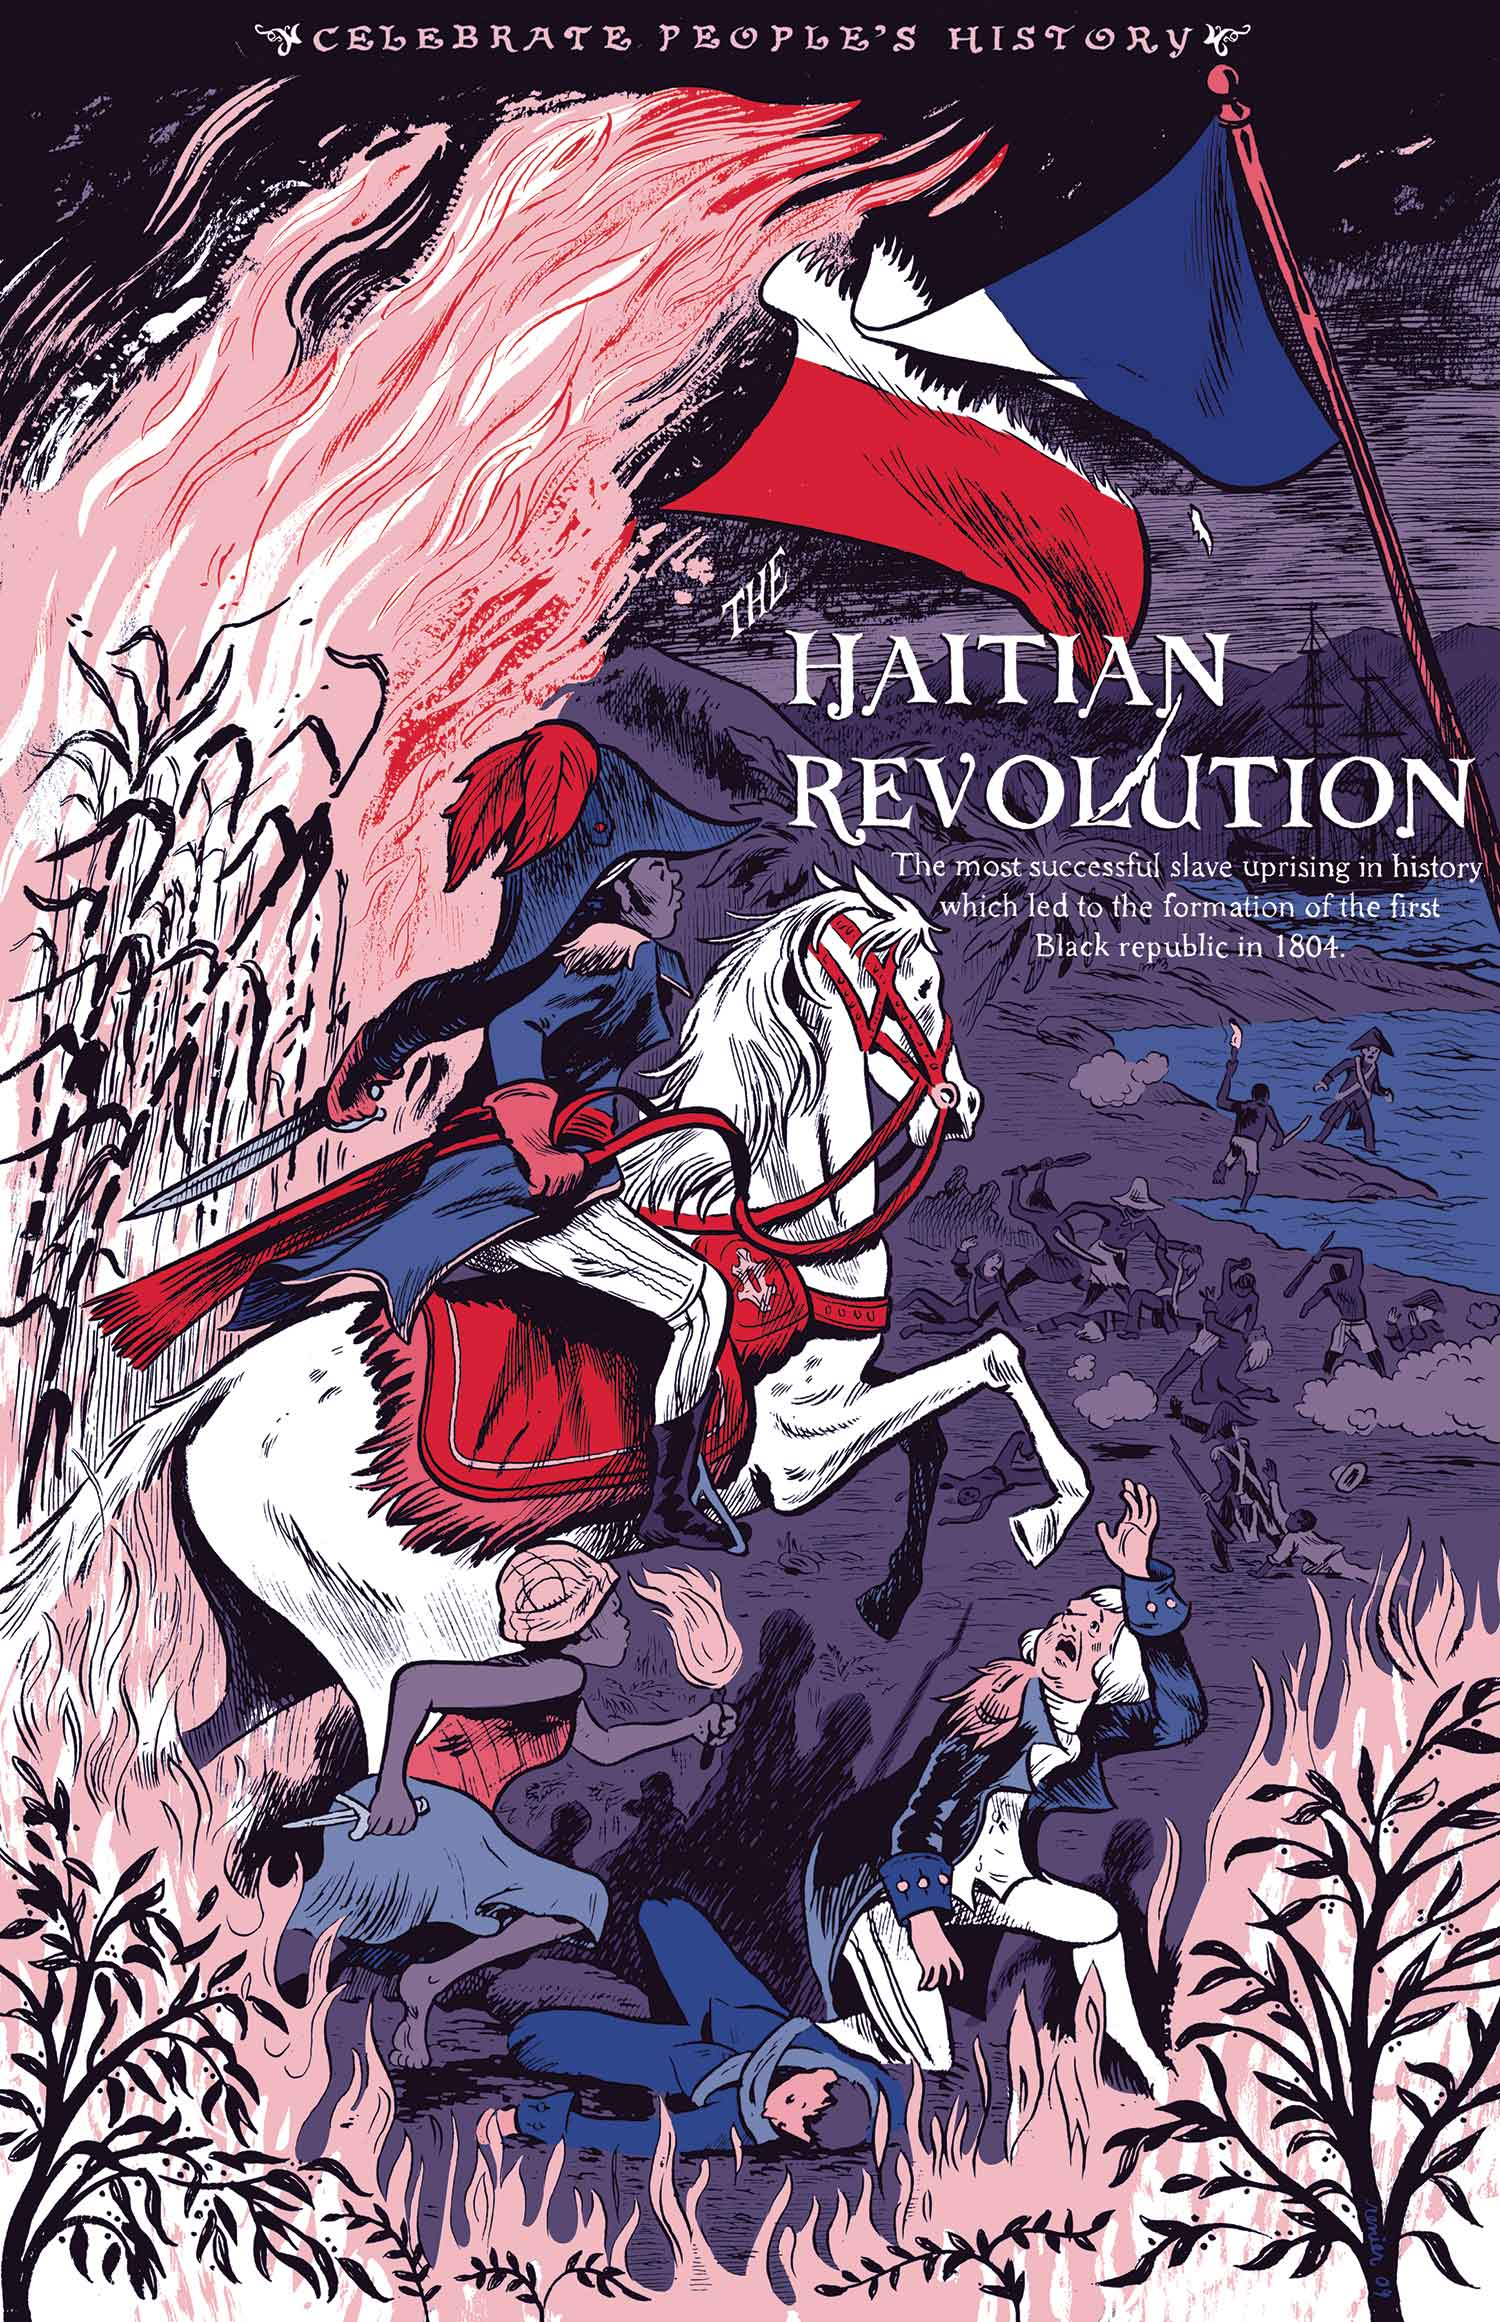 hatian revolution Throughout history, revolutions have started because of new ideas that change  thinking and disrupt the status quo the haitian revolution of 1789-1804 is no.